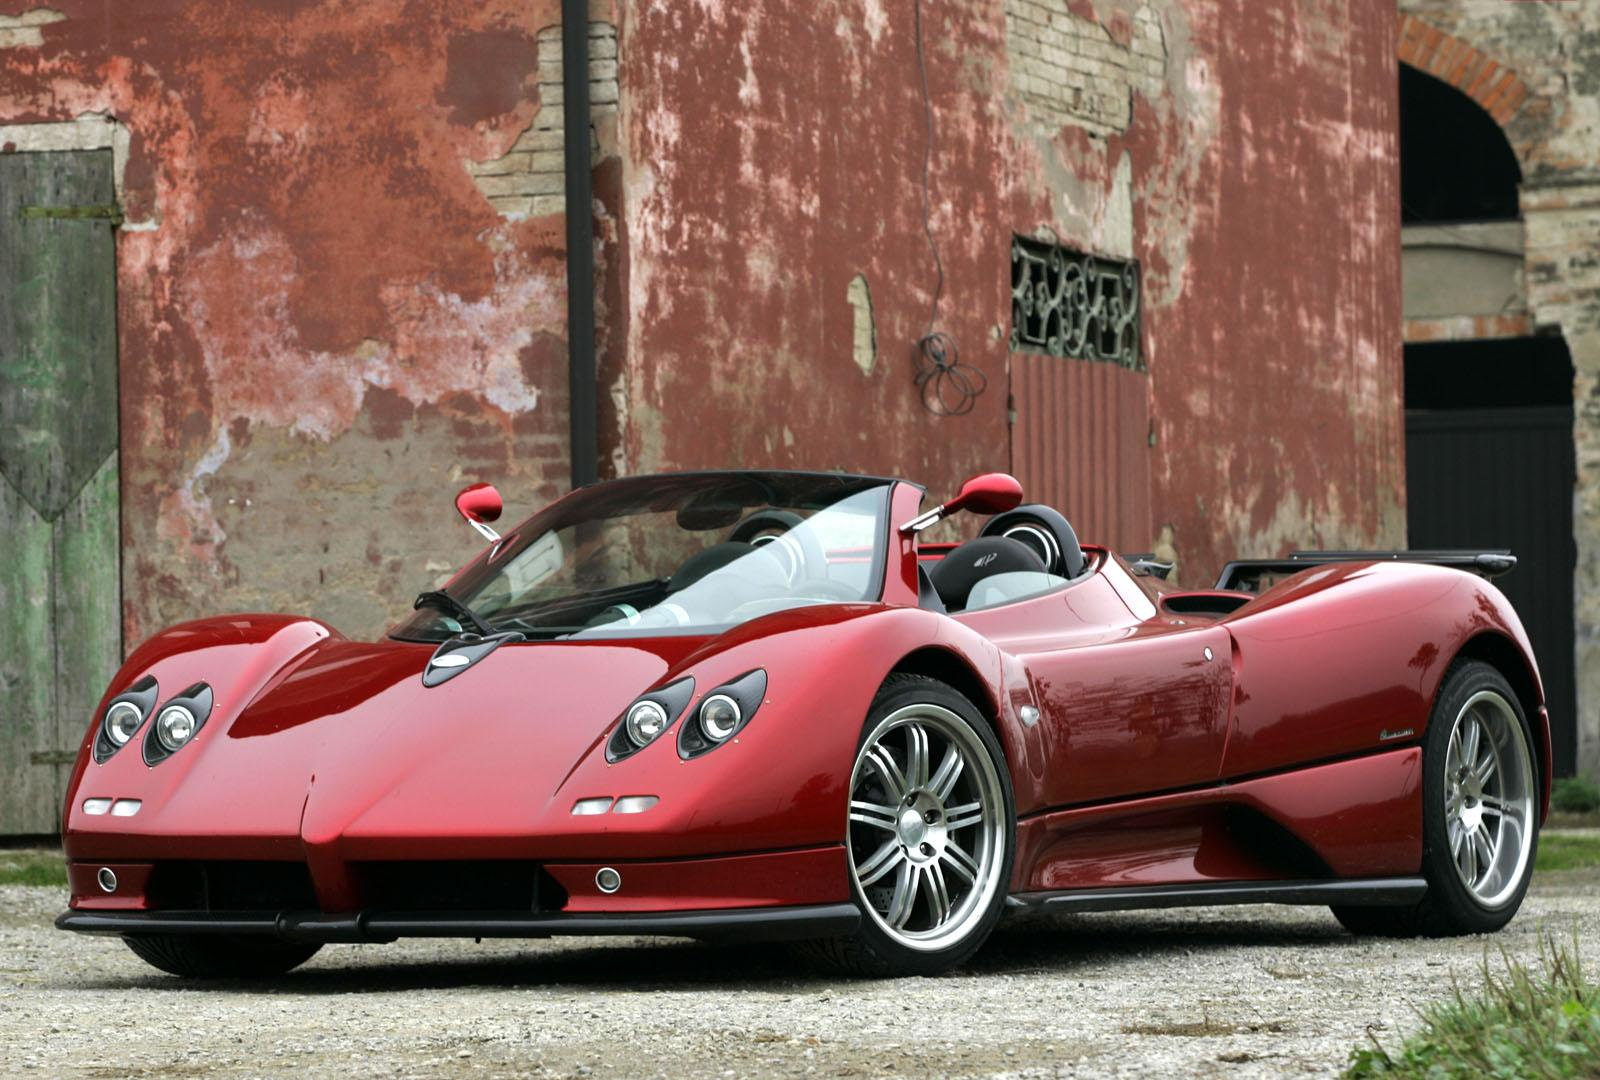 Index of /data_images/galleryes/pagani-zonda-c12-s/